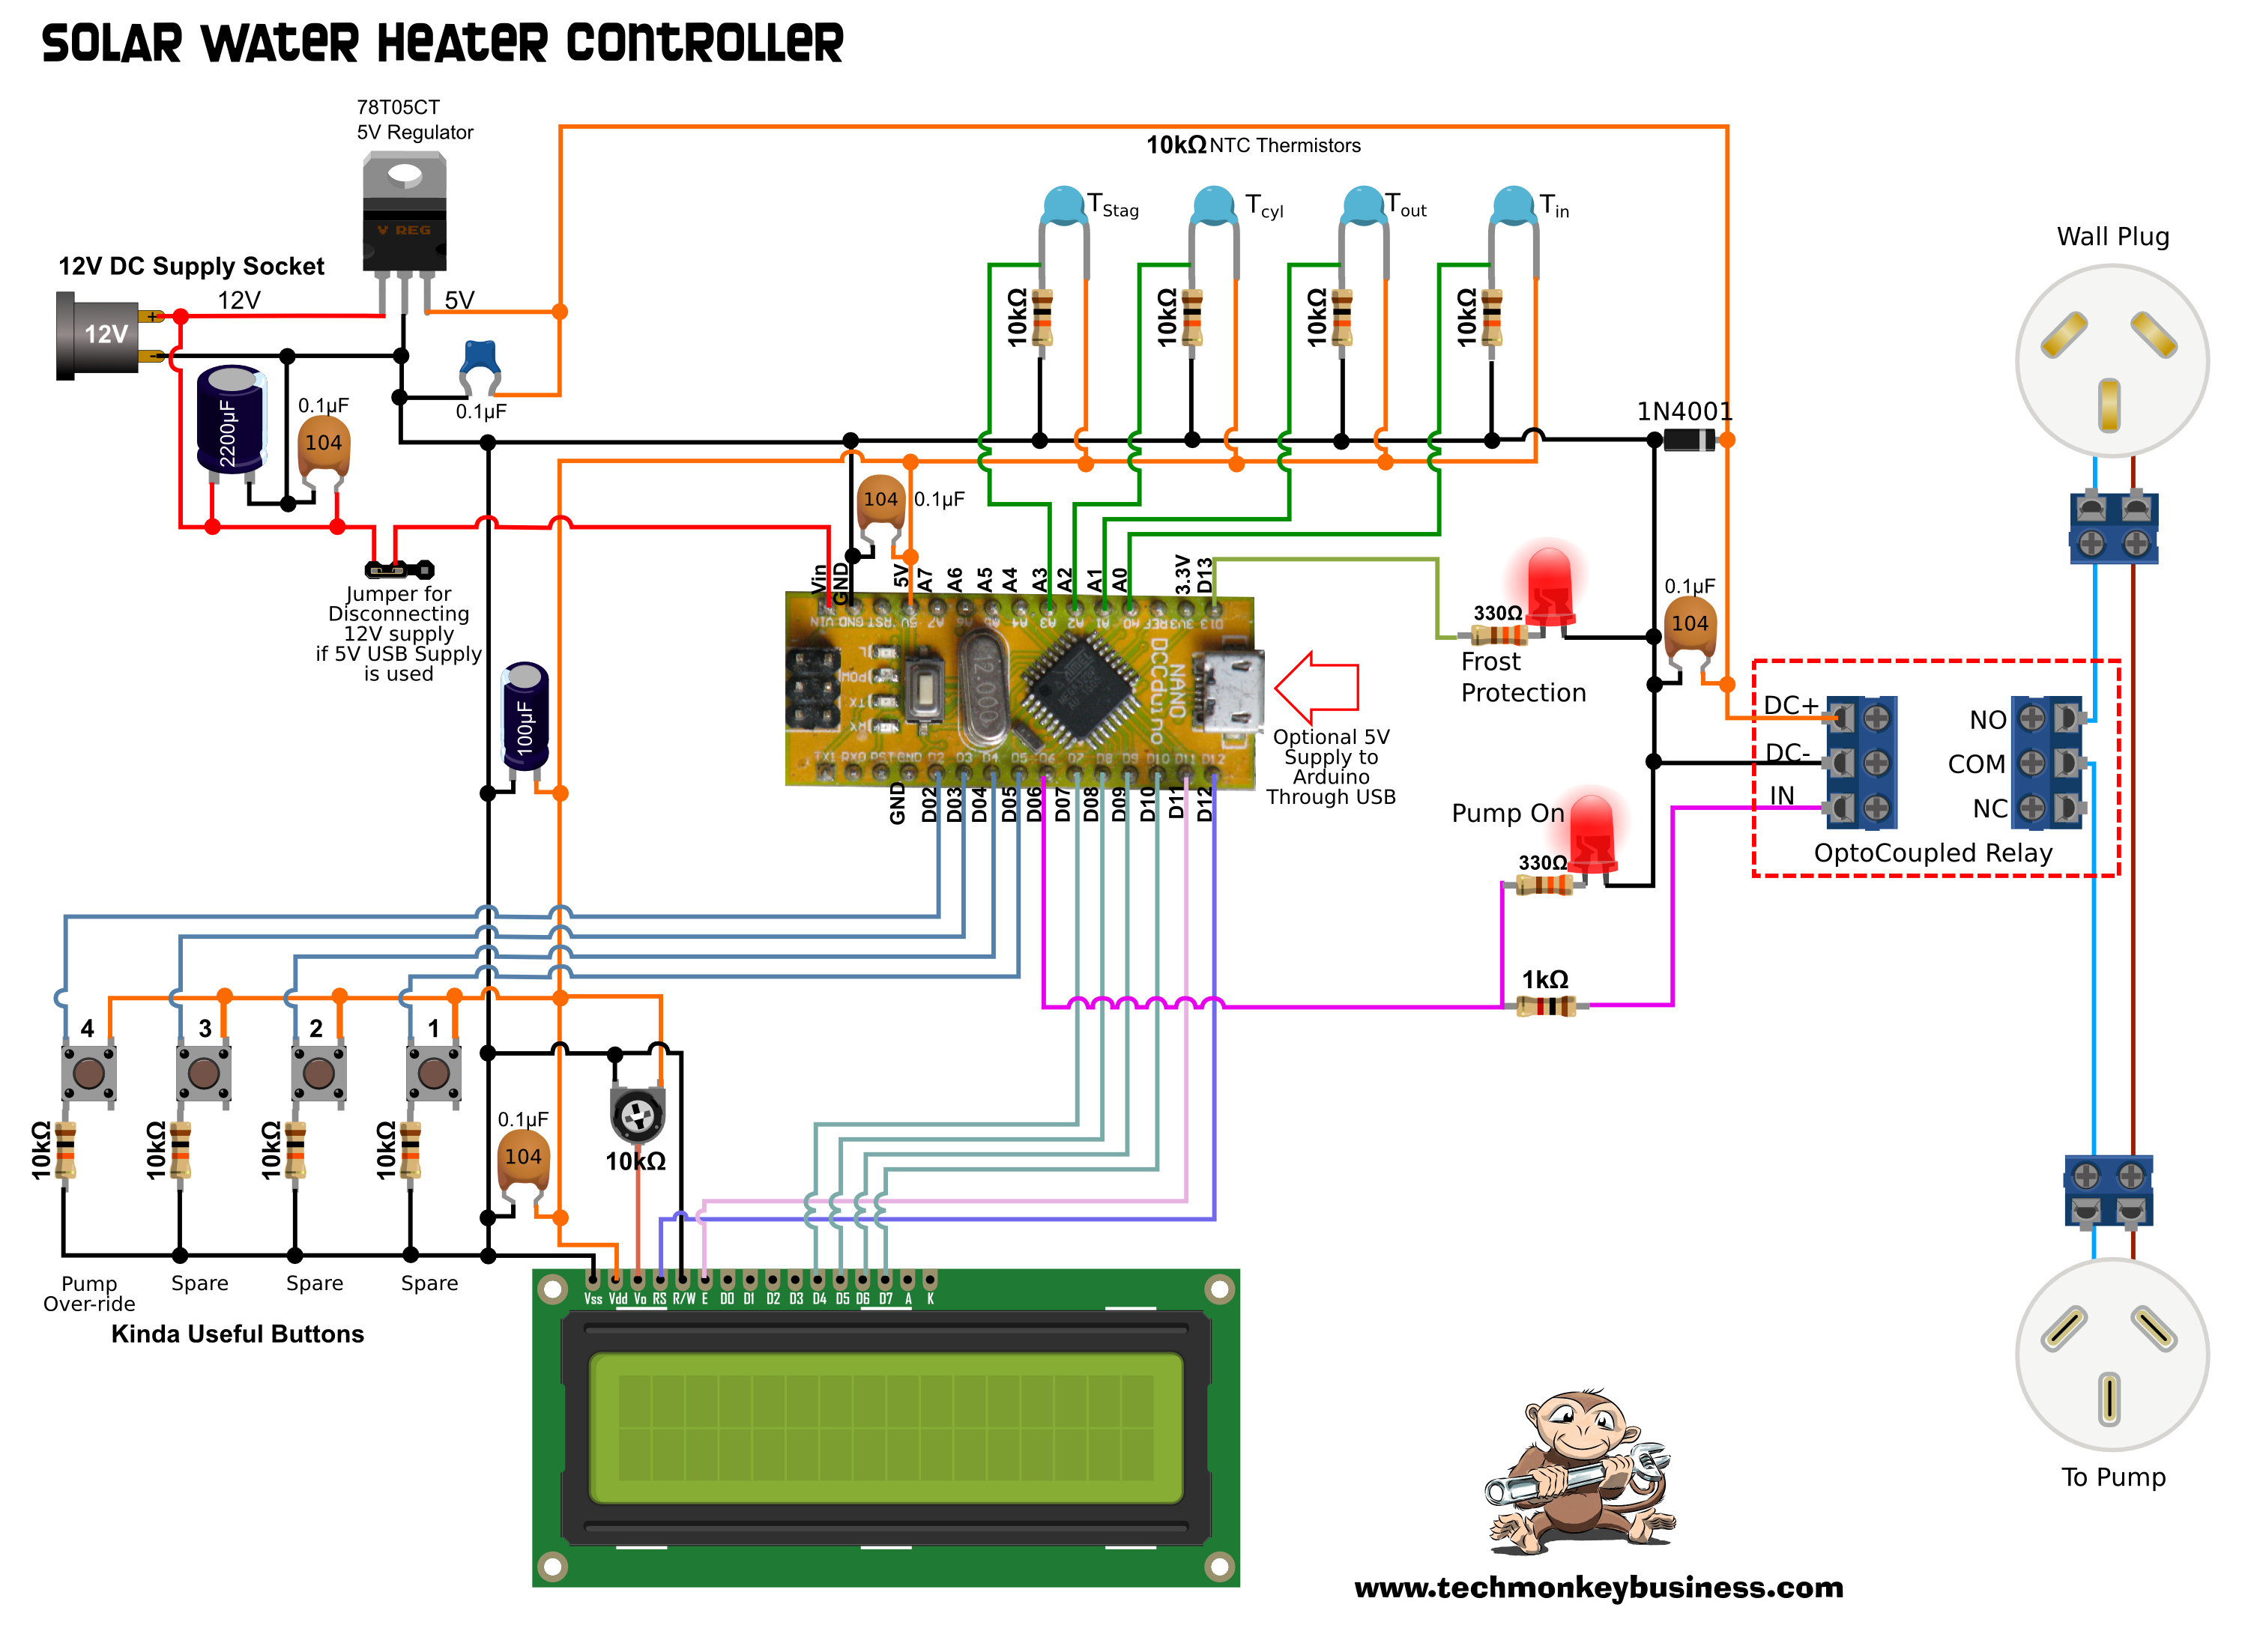 solar water heater schematic diagram pig dissection blank the controller in real world